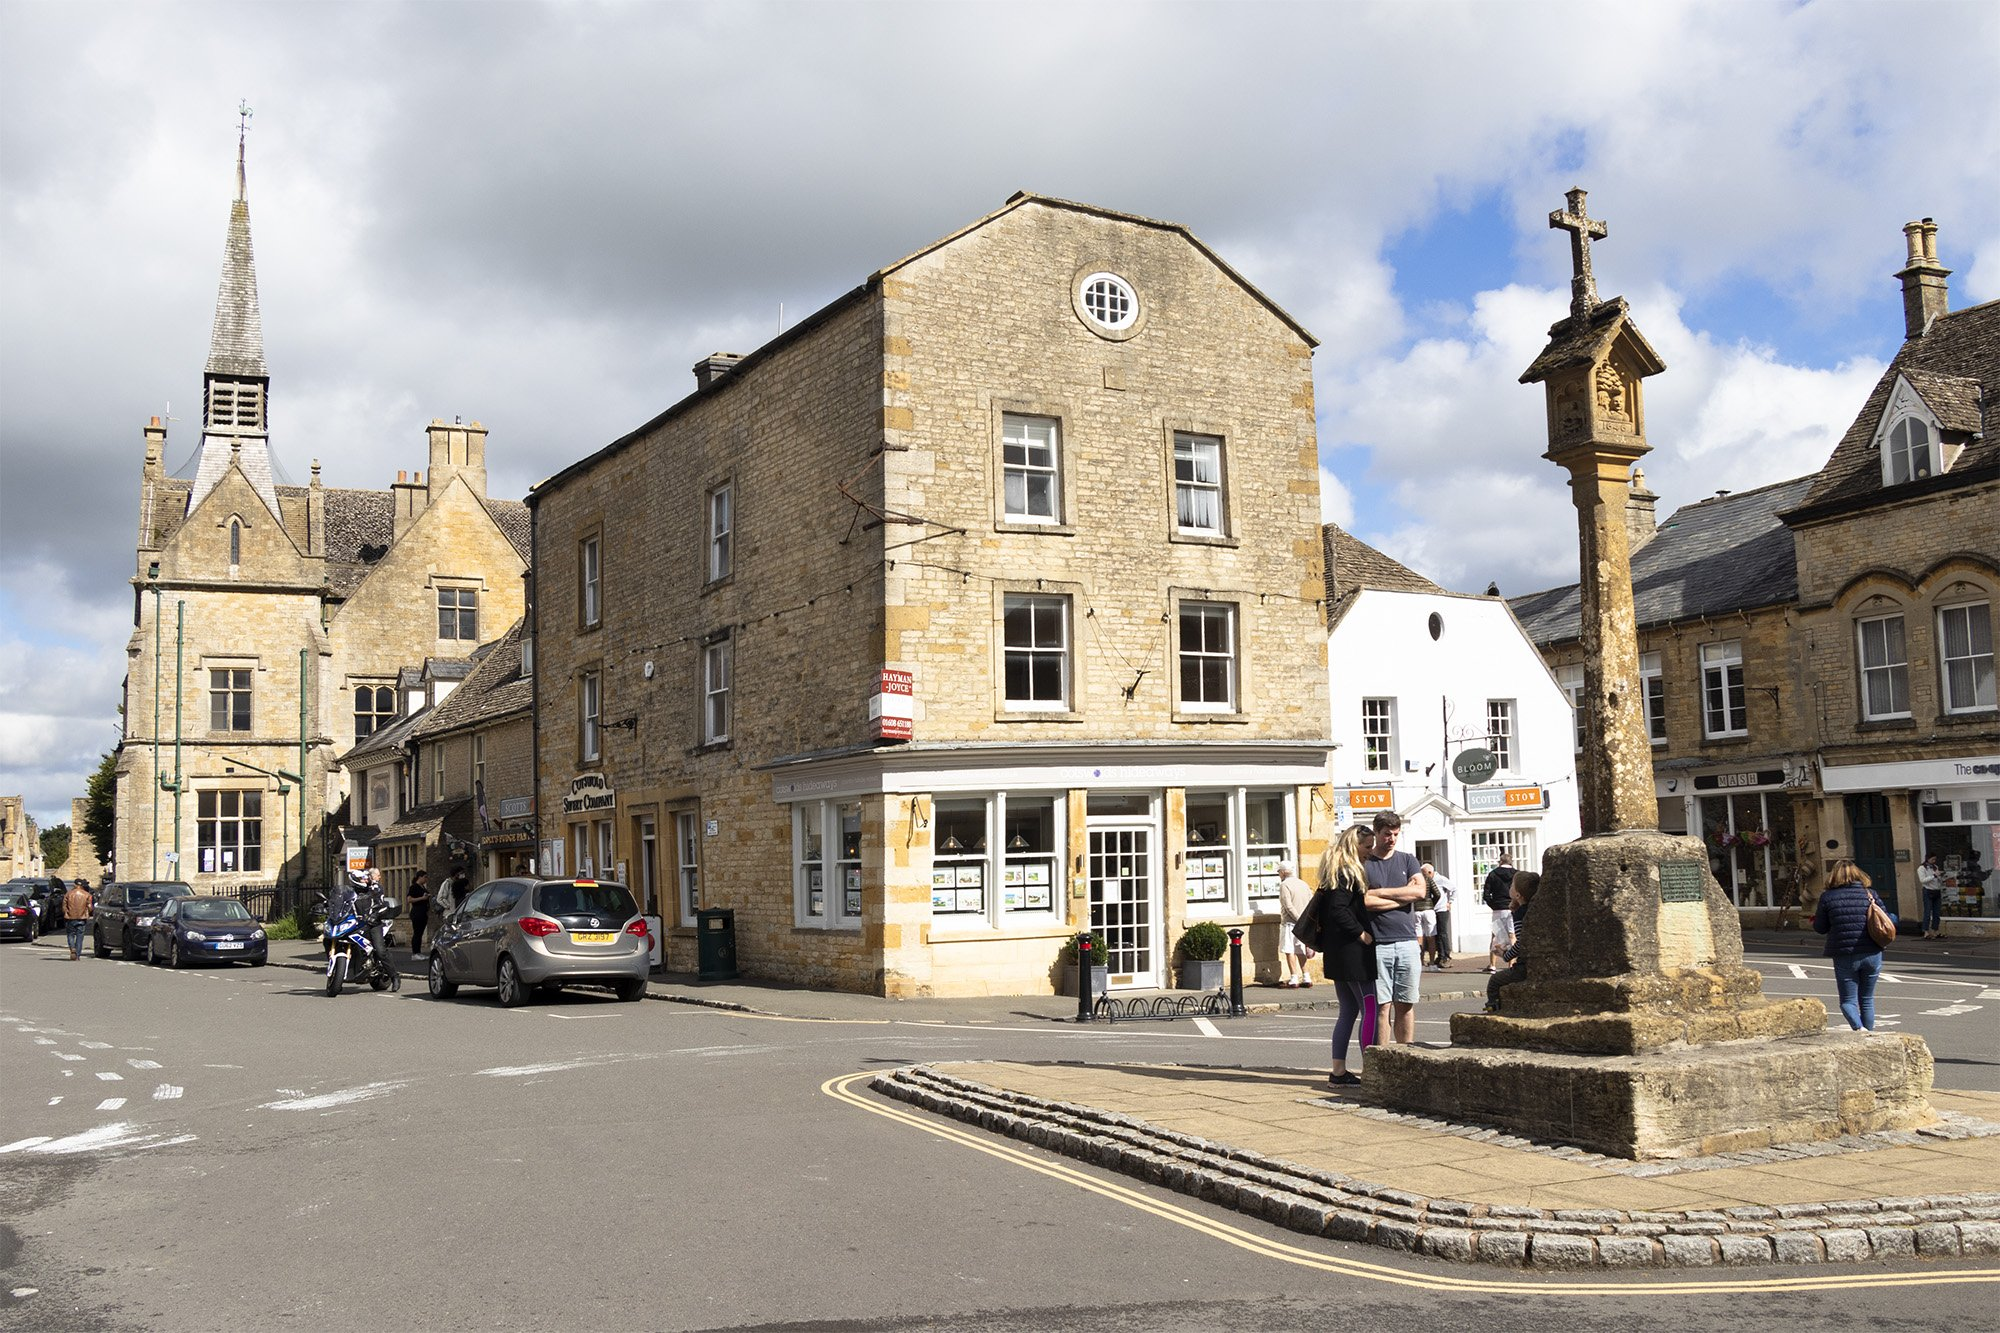 Stow-on-the-Wold market cross